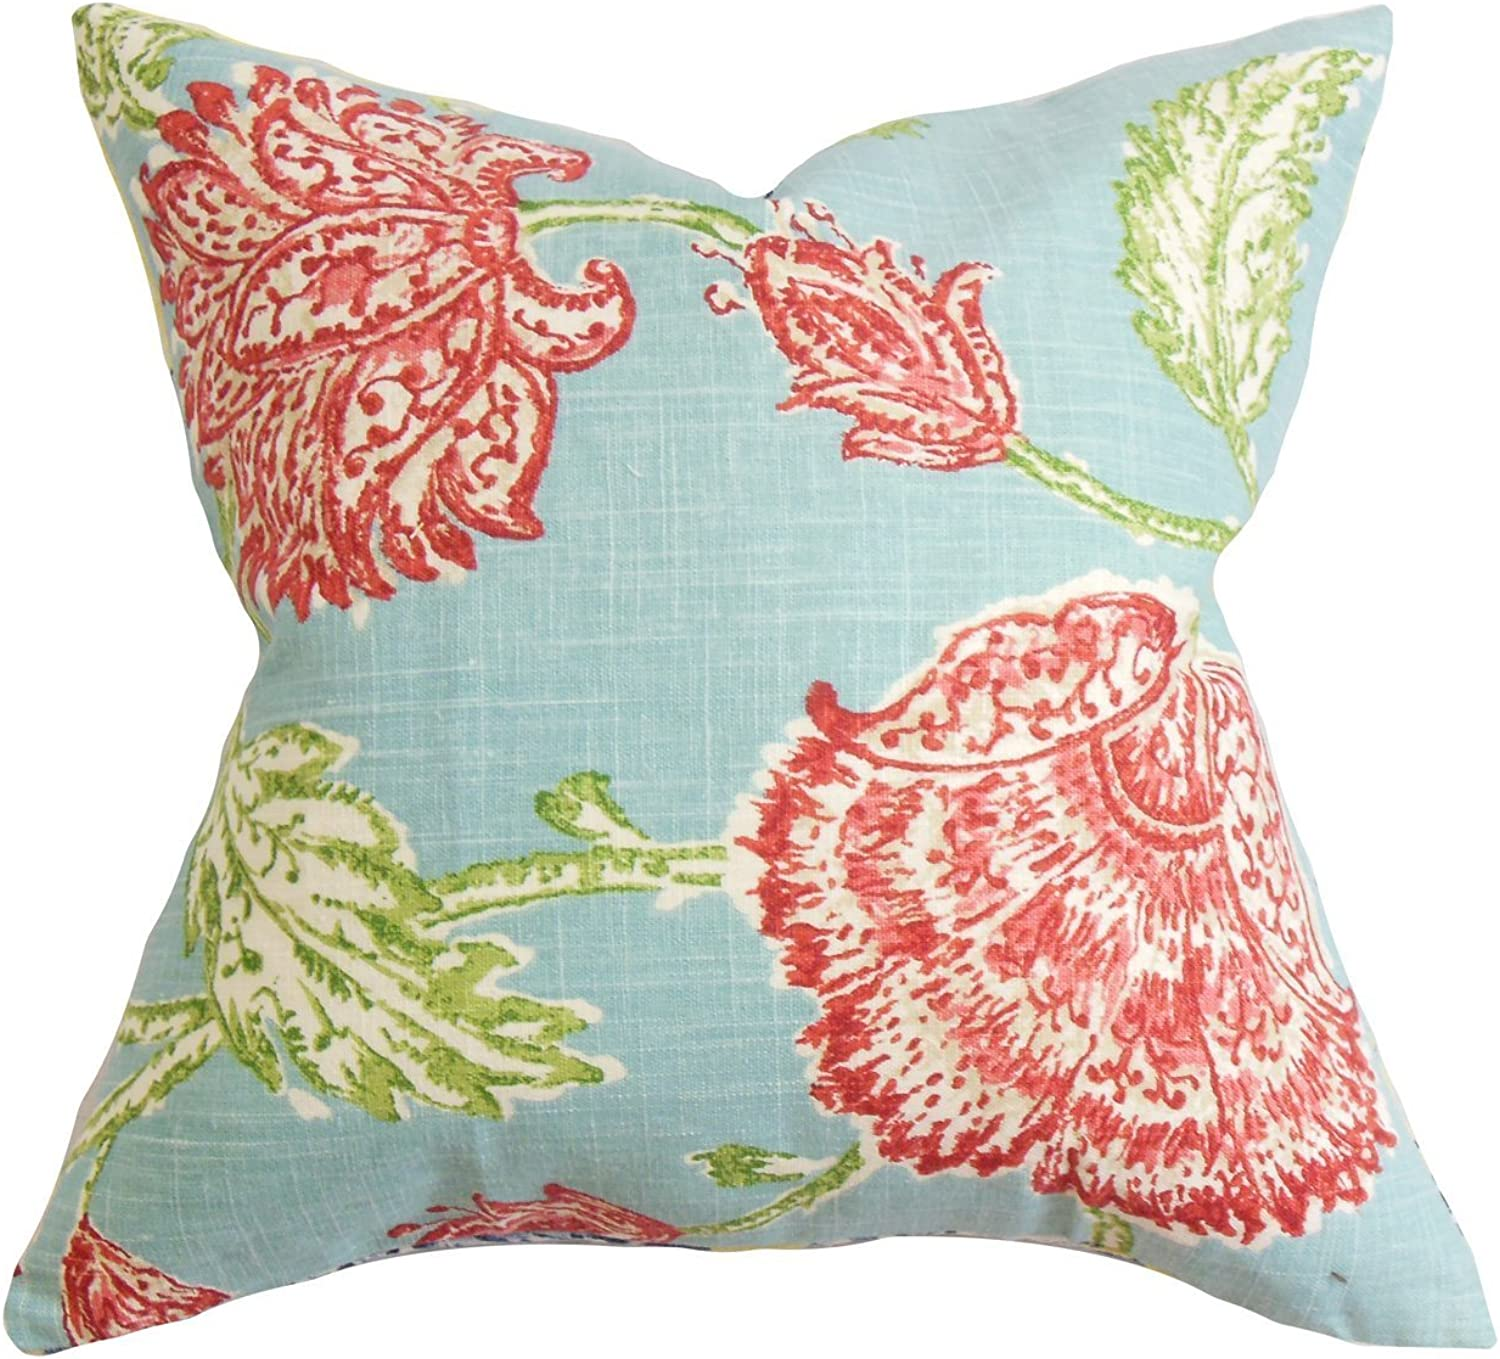 The Pillow Collection Behati Floral Throw Pillow Cover